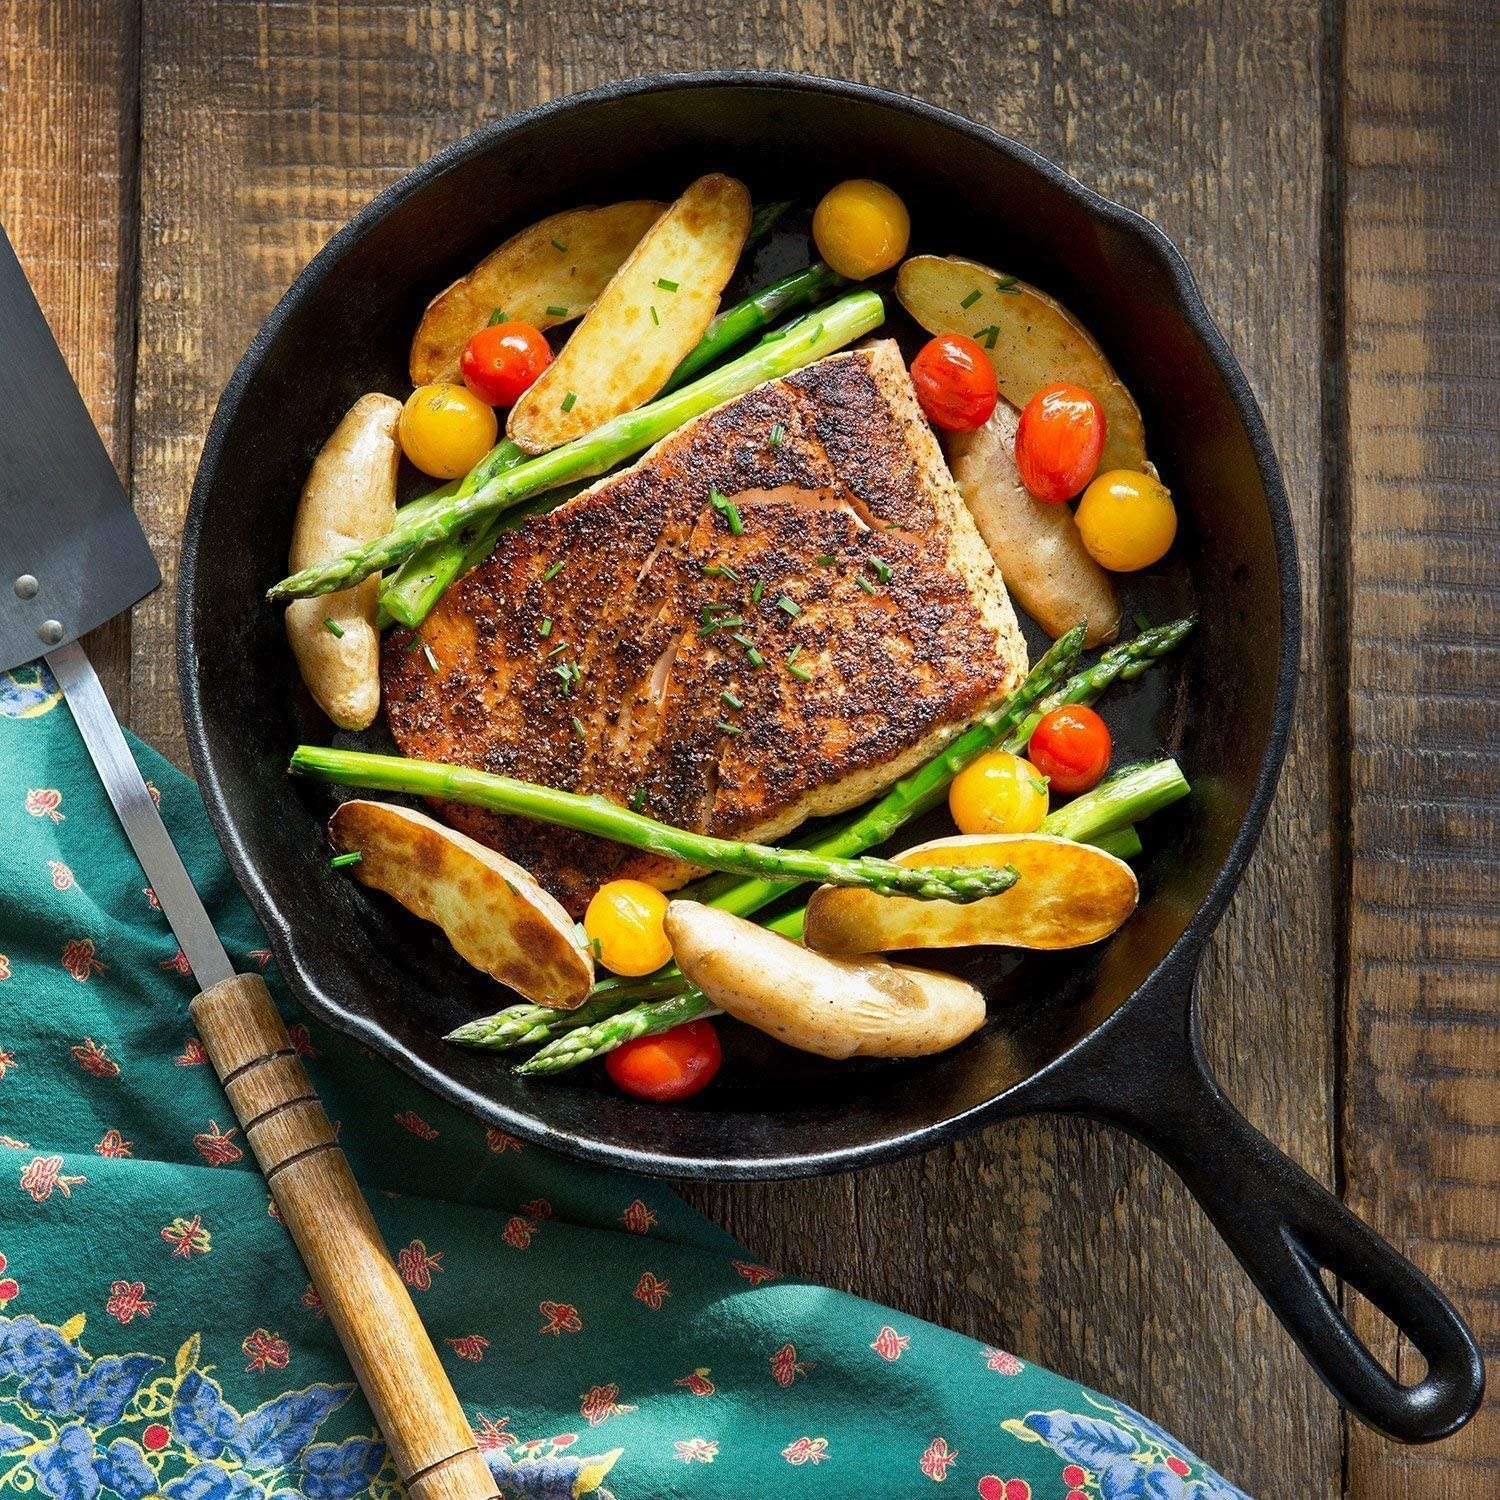 The cast iron skillet